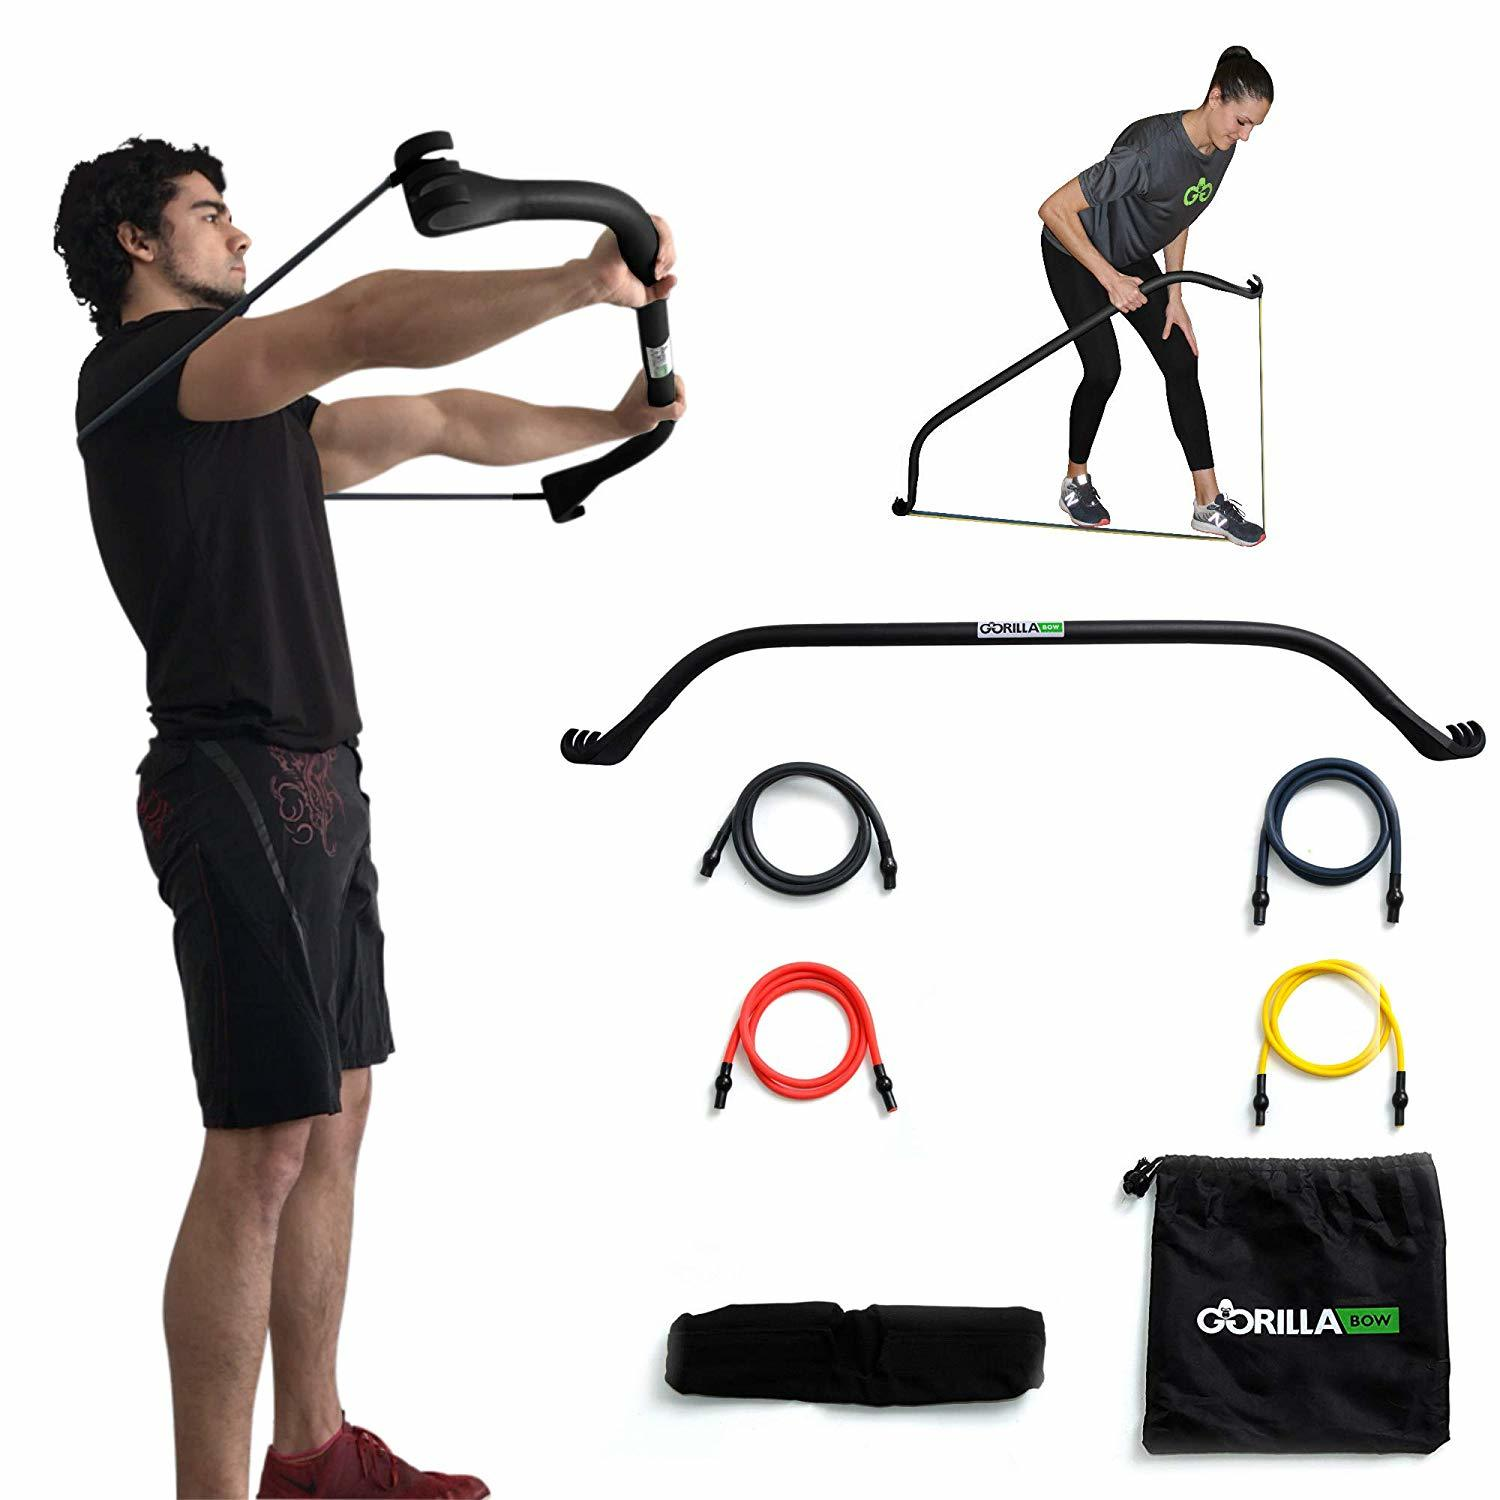 Workout Bands That Won T Break: 14 Best Compact Exercise Equipment For Apartments And